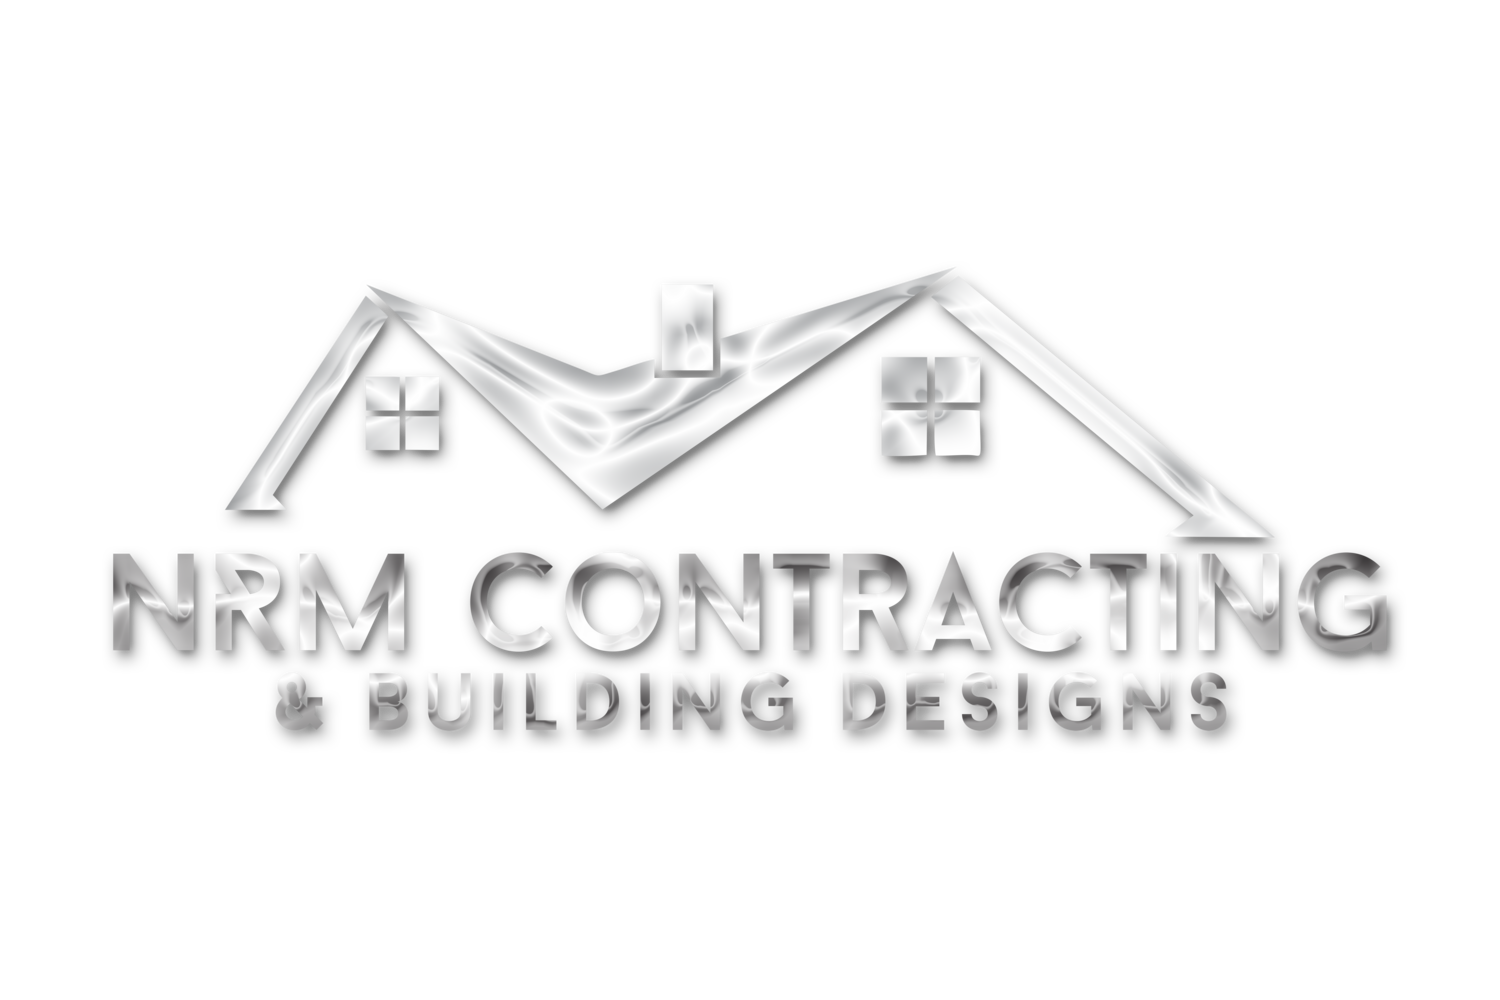 NRM Contracting & Building Designs